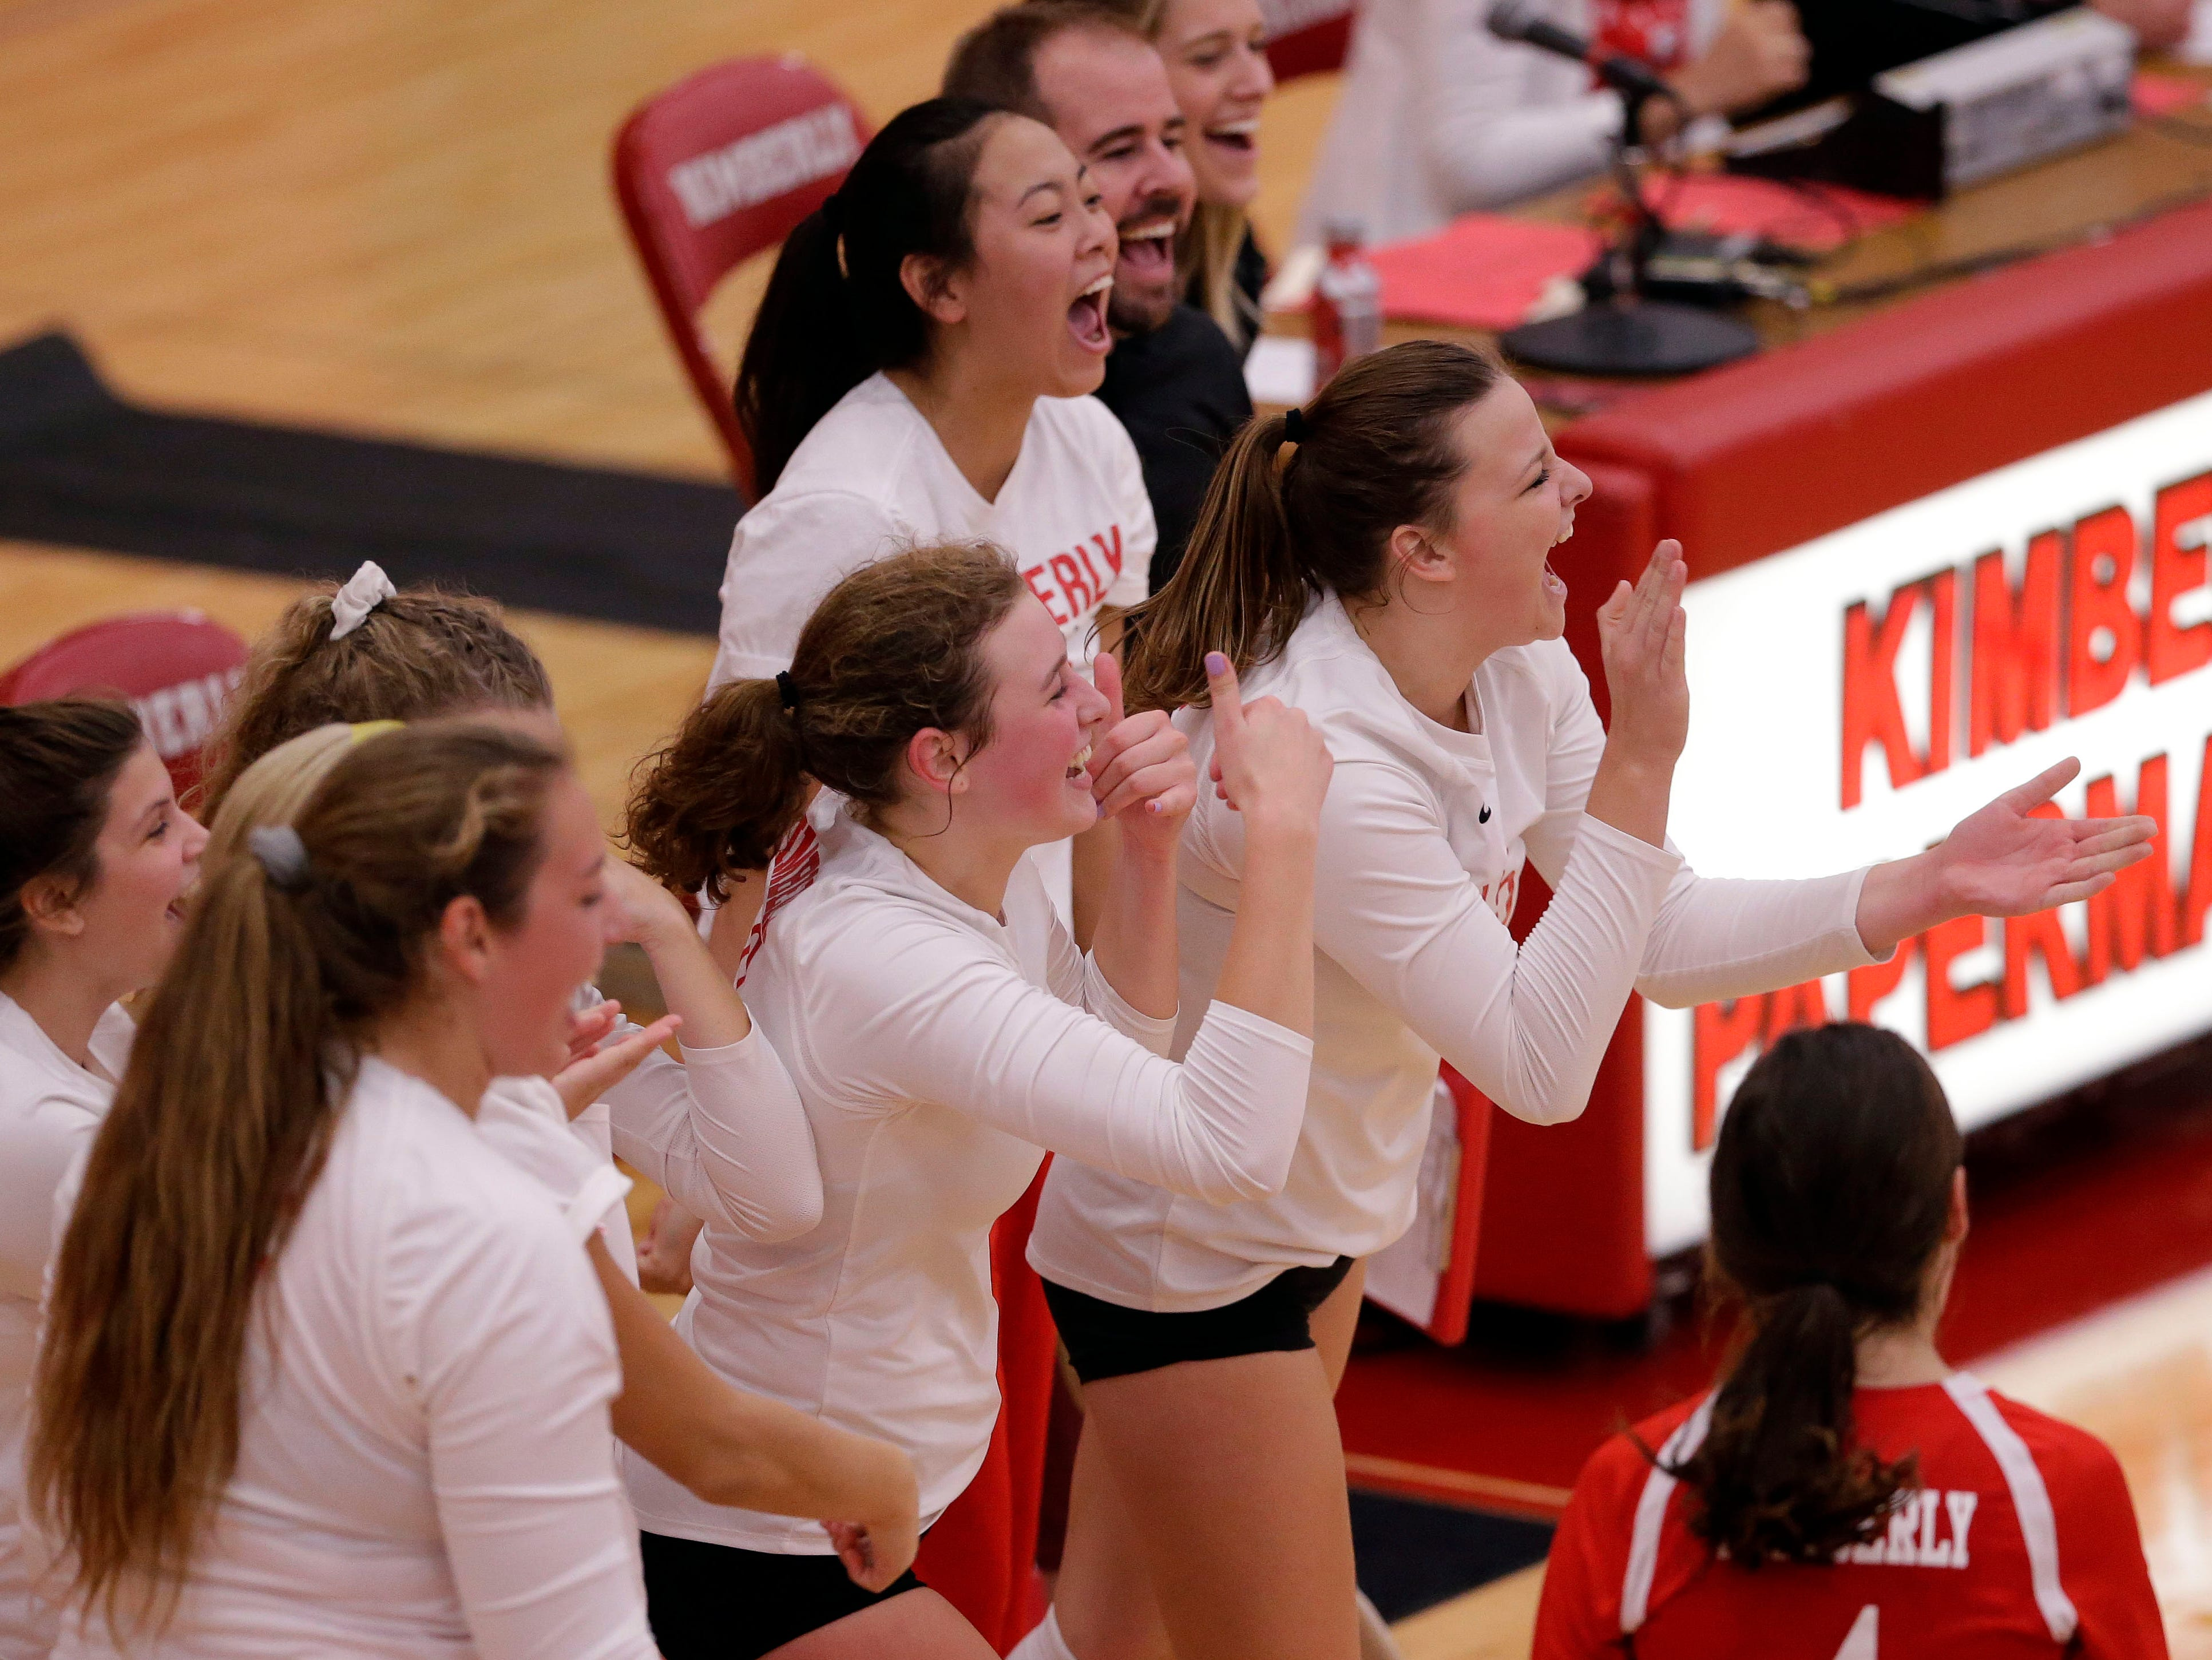 Kimberly players celebrate as they take on Neenah in FVA girls volleyball Tuesday, September 11, 2018, at Kimberly High School in Kimberly, Wis.Ron Page/USA TODAY NETWORK-Wisconsin